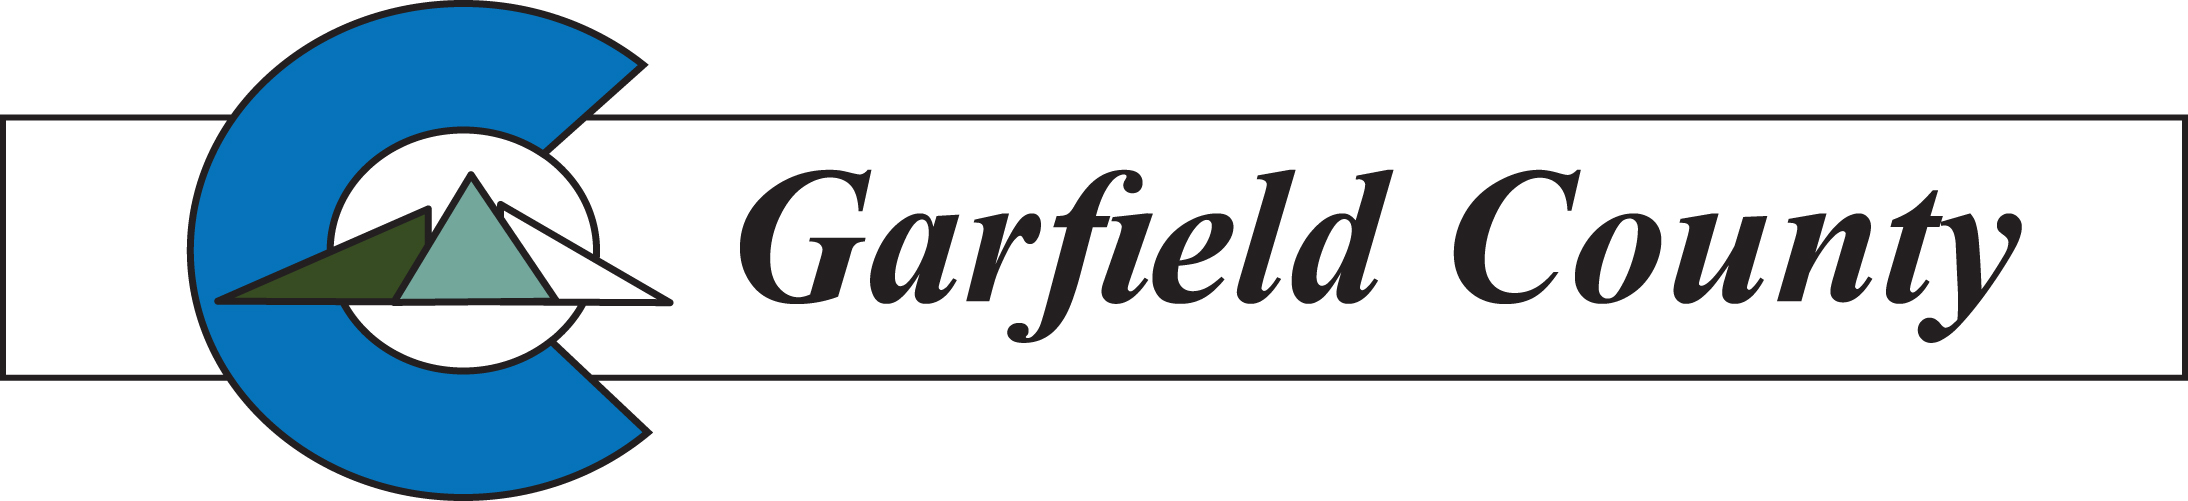 Garfield County logo